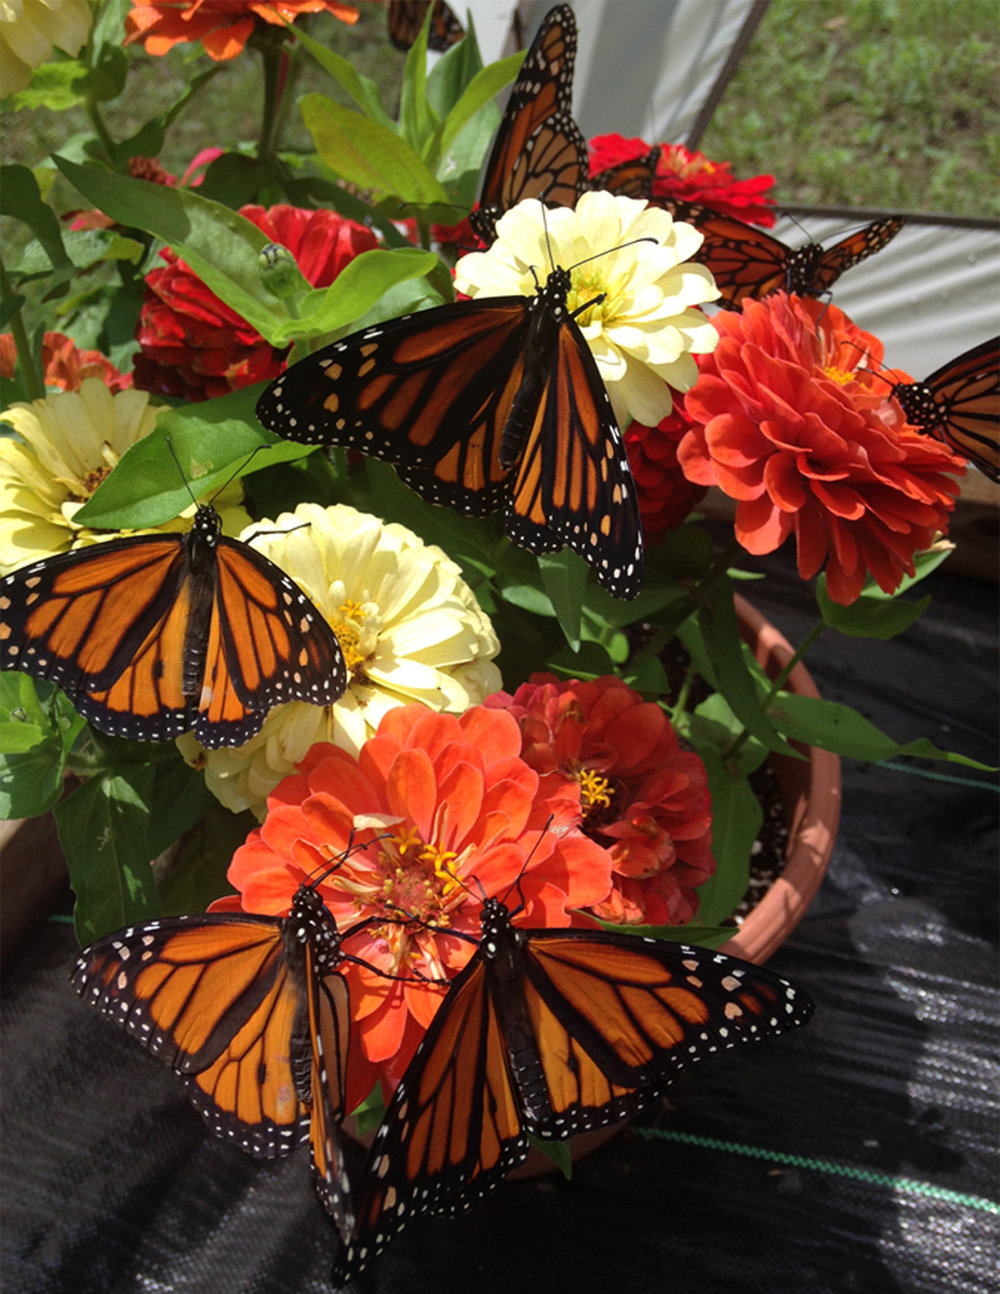 Join us! - Join us on August 19th at the Ballantine Park Pavilion from 1 to 3 PM for an up-close and personal butterfly encounter! Geared for children ages 4 through 12, there will be fun, games, and lots of butterflies to feed!